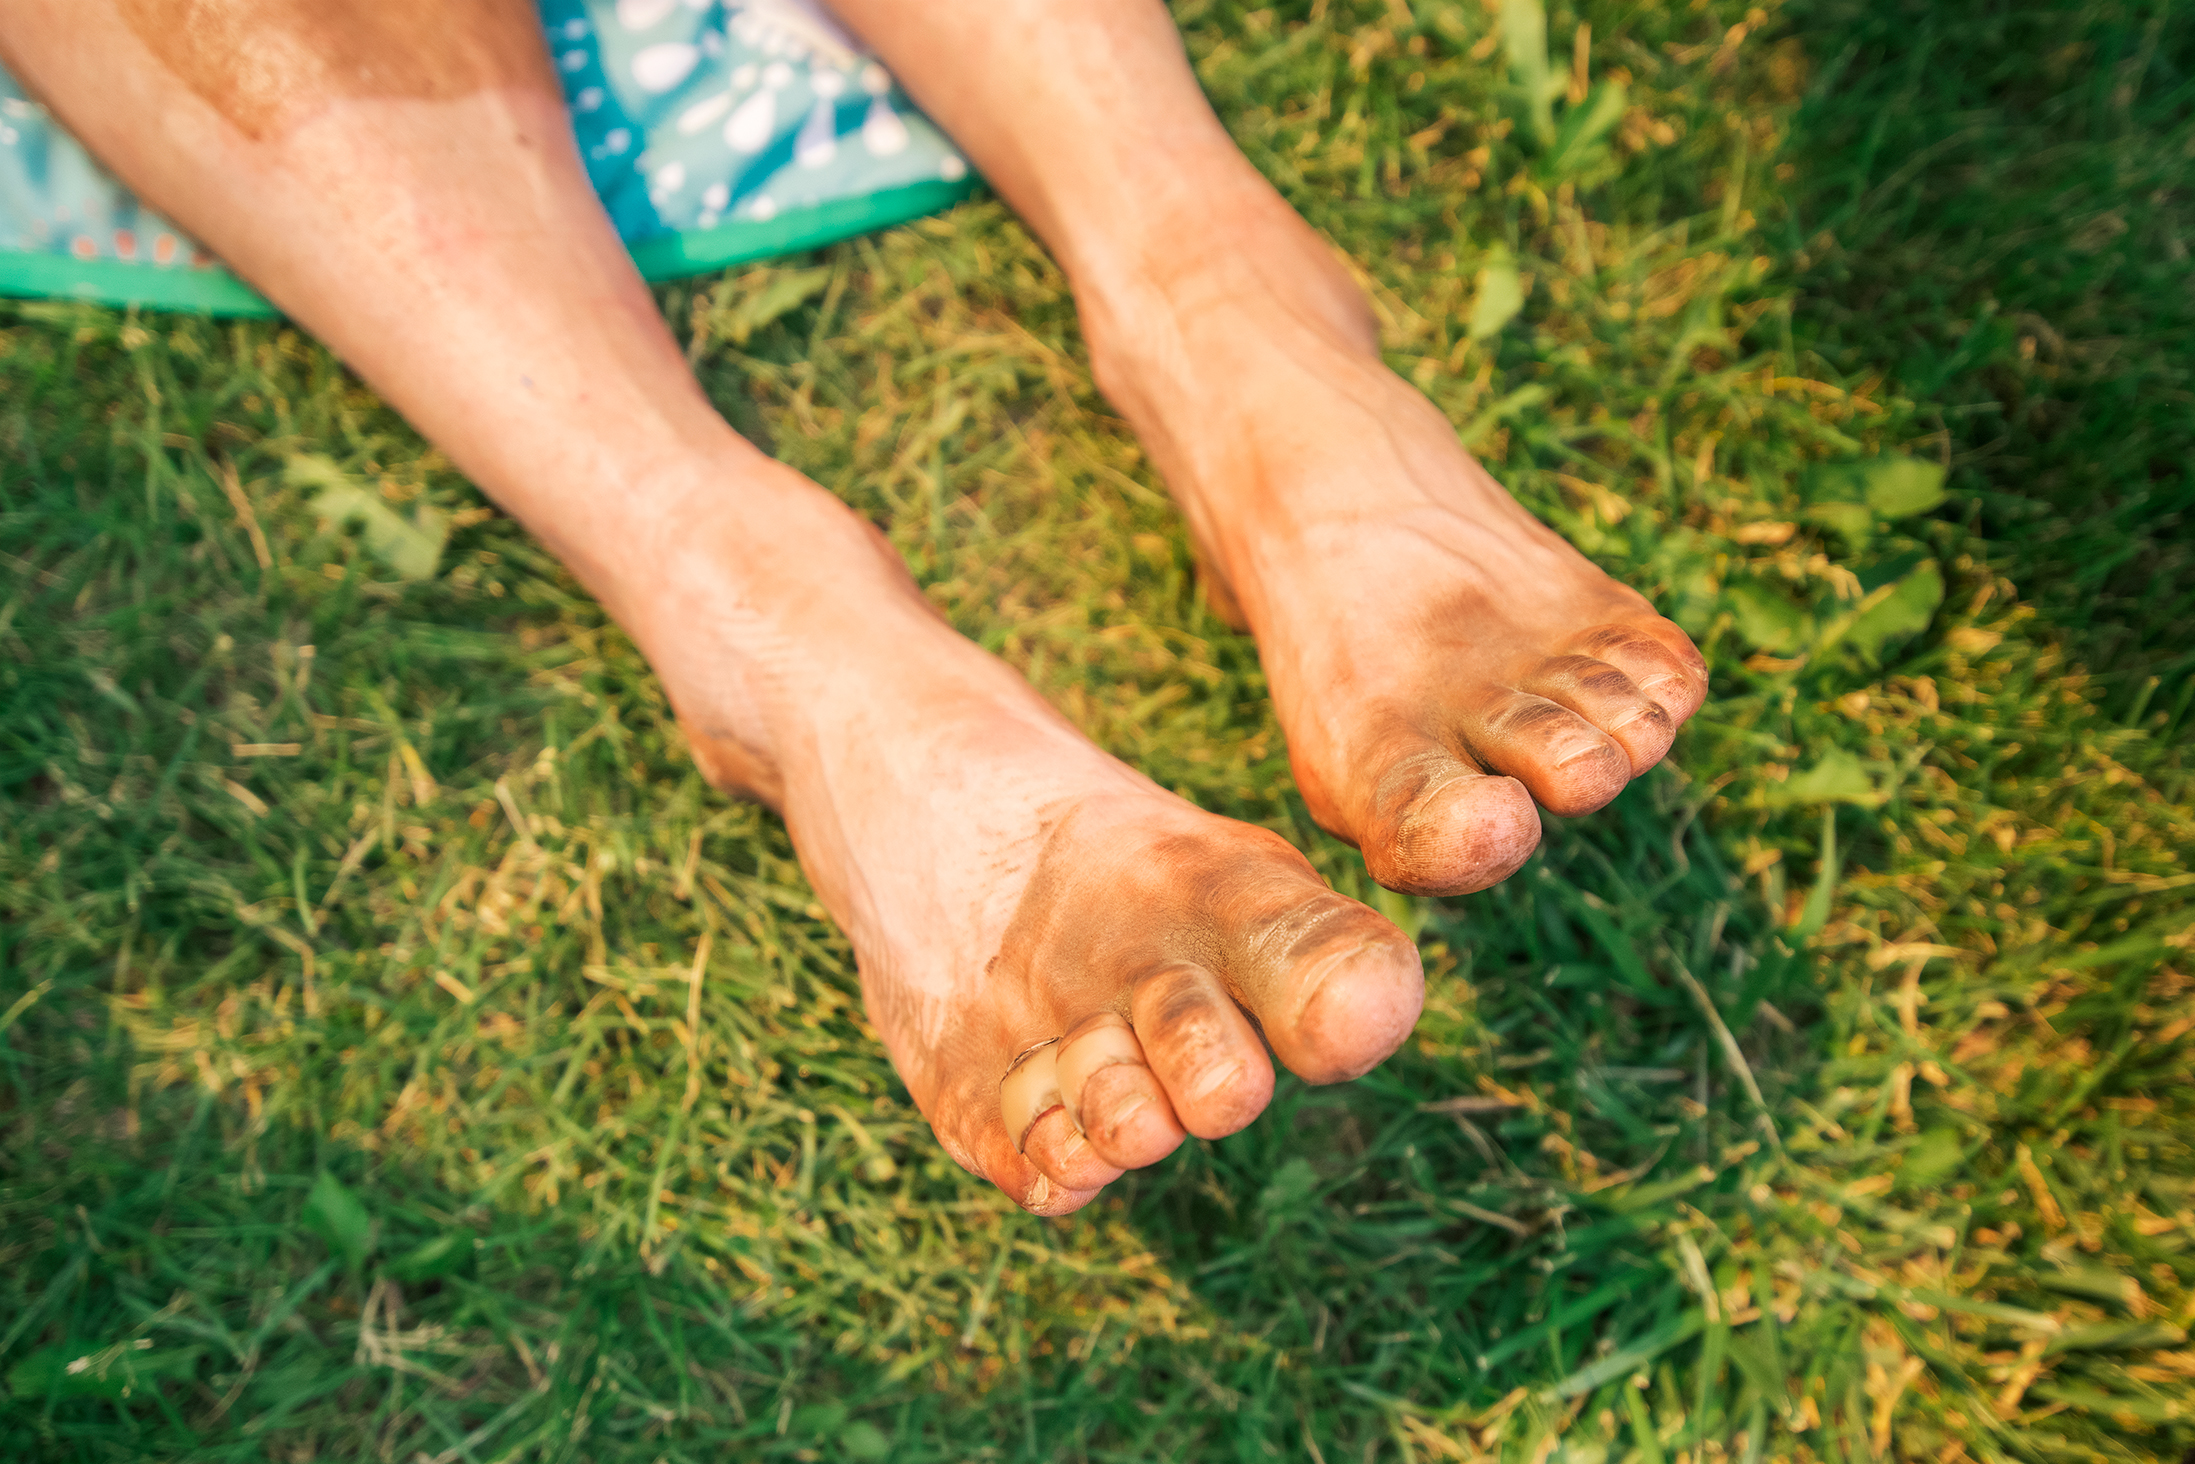 Feet Of An Ultra Marathon Runner